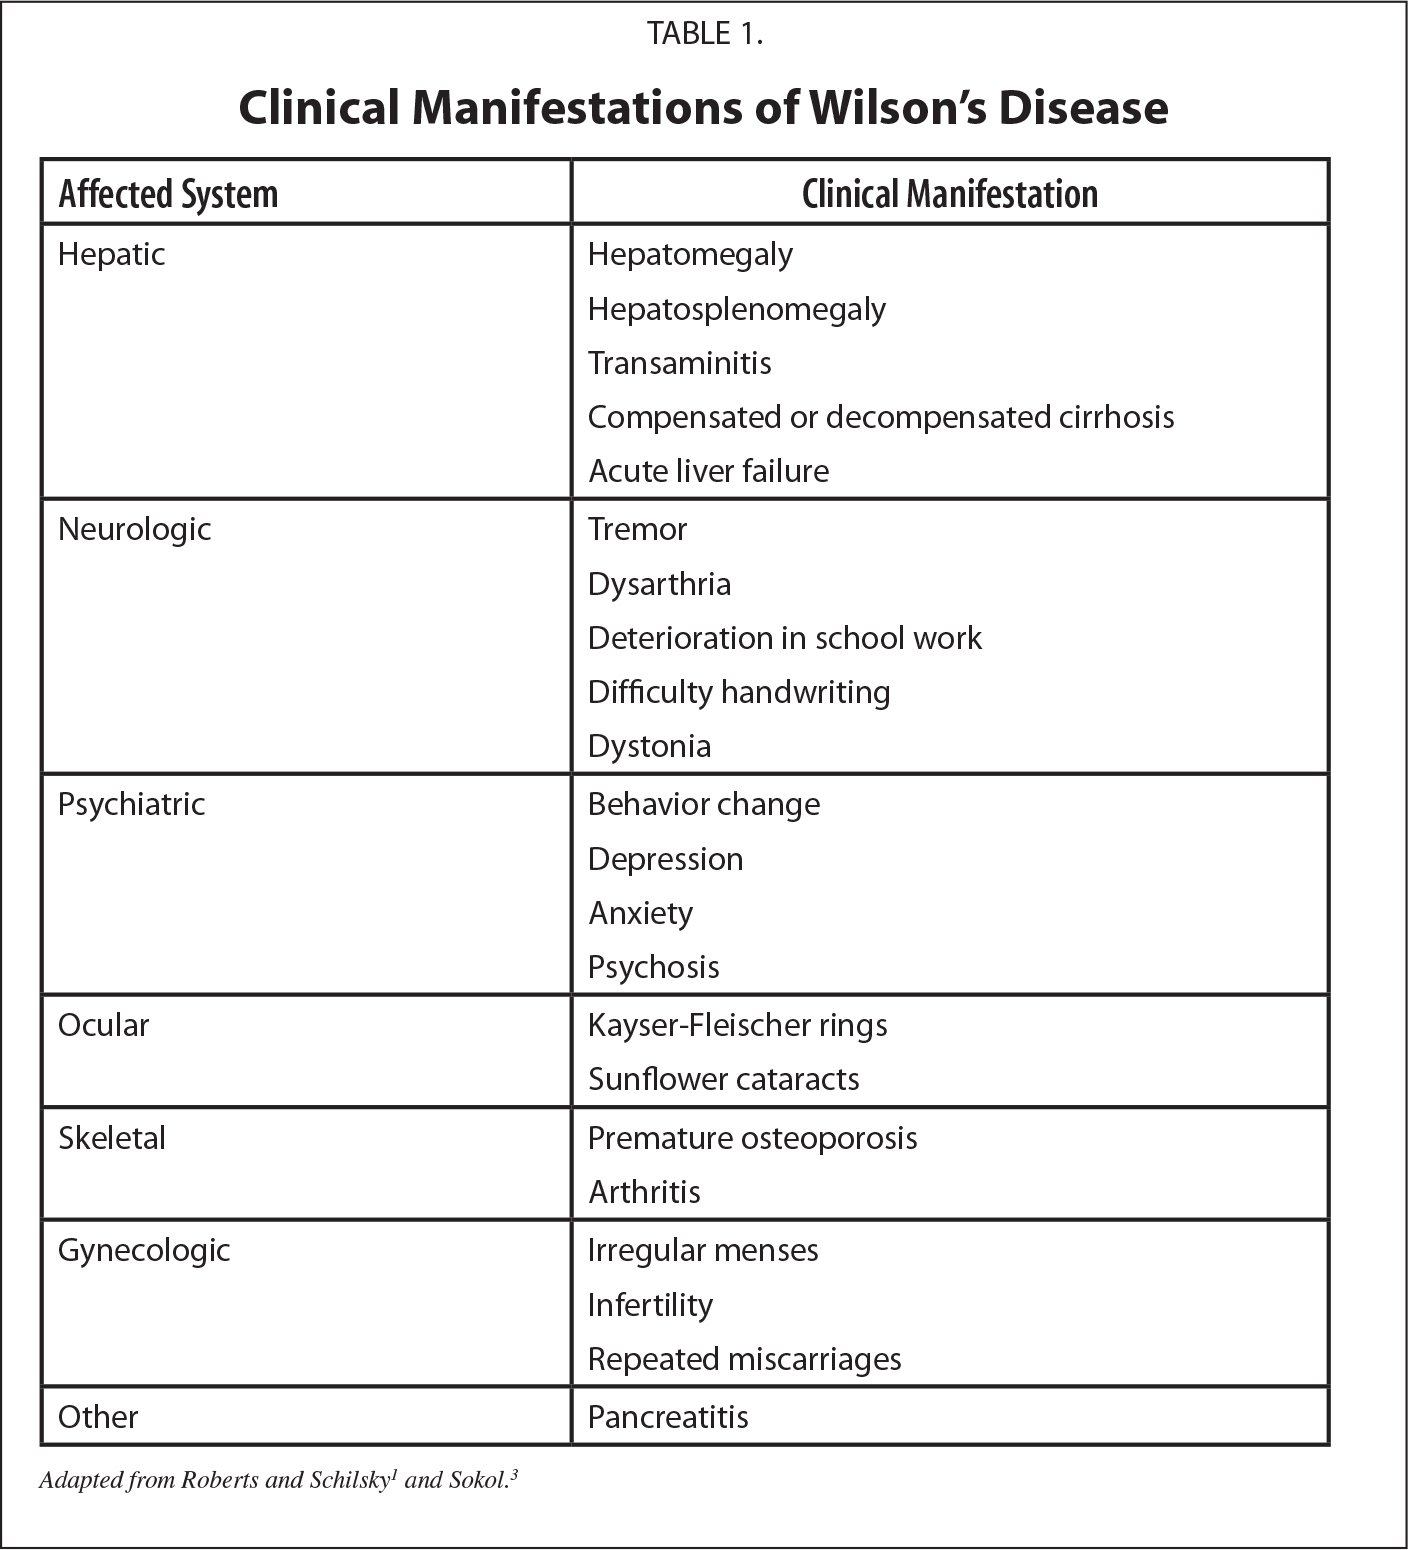 Clinical Manifestations of Wilson's Disease